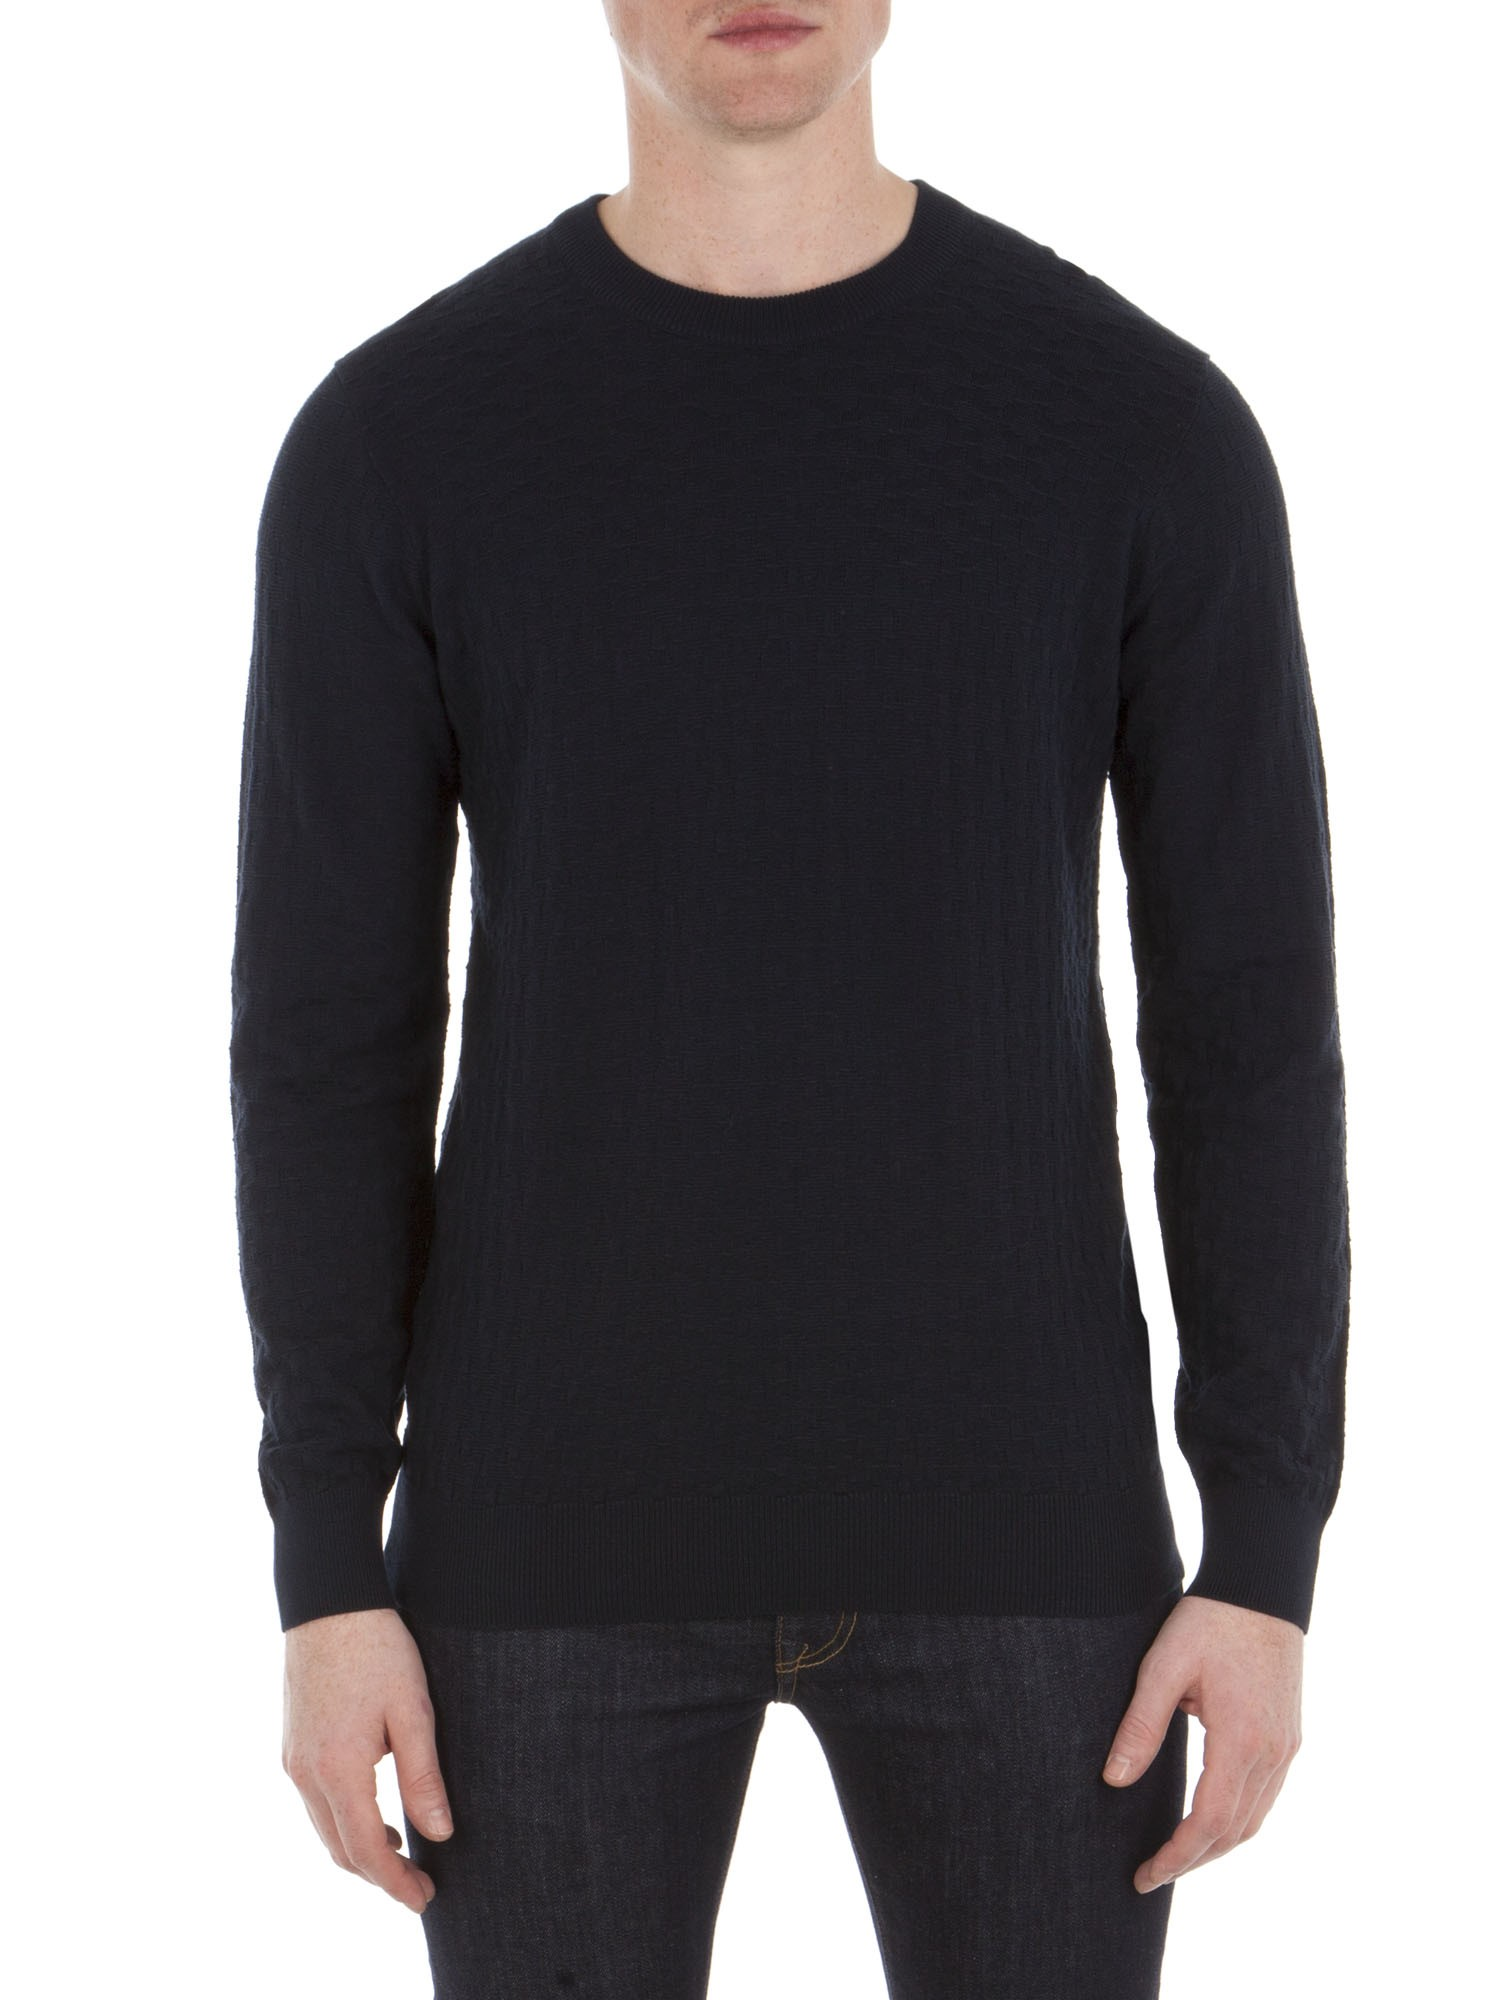 Ben Sherman Staples Blue Textured Knitted Crew Neck Jumper